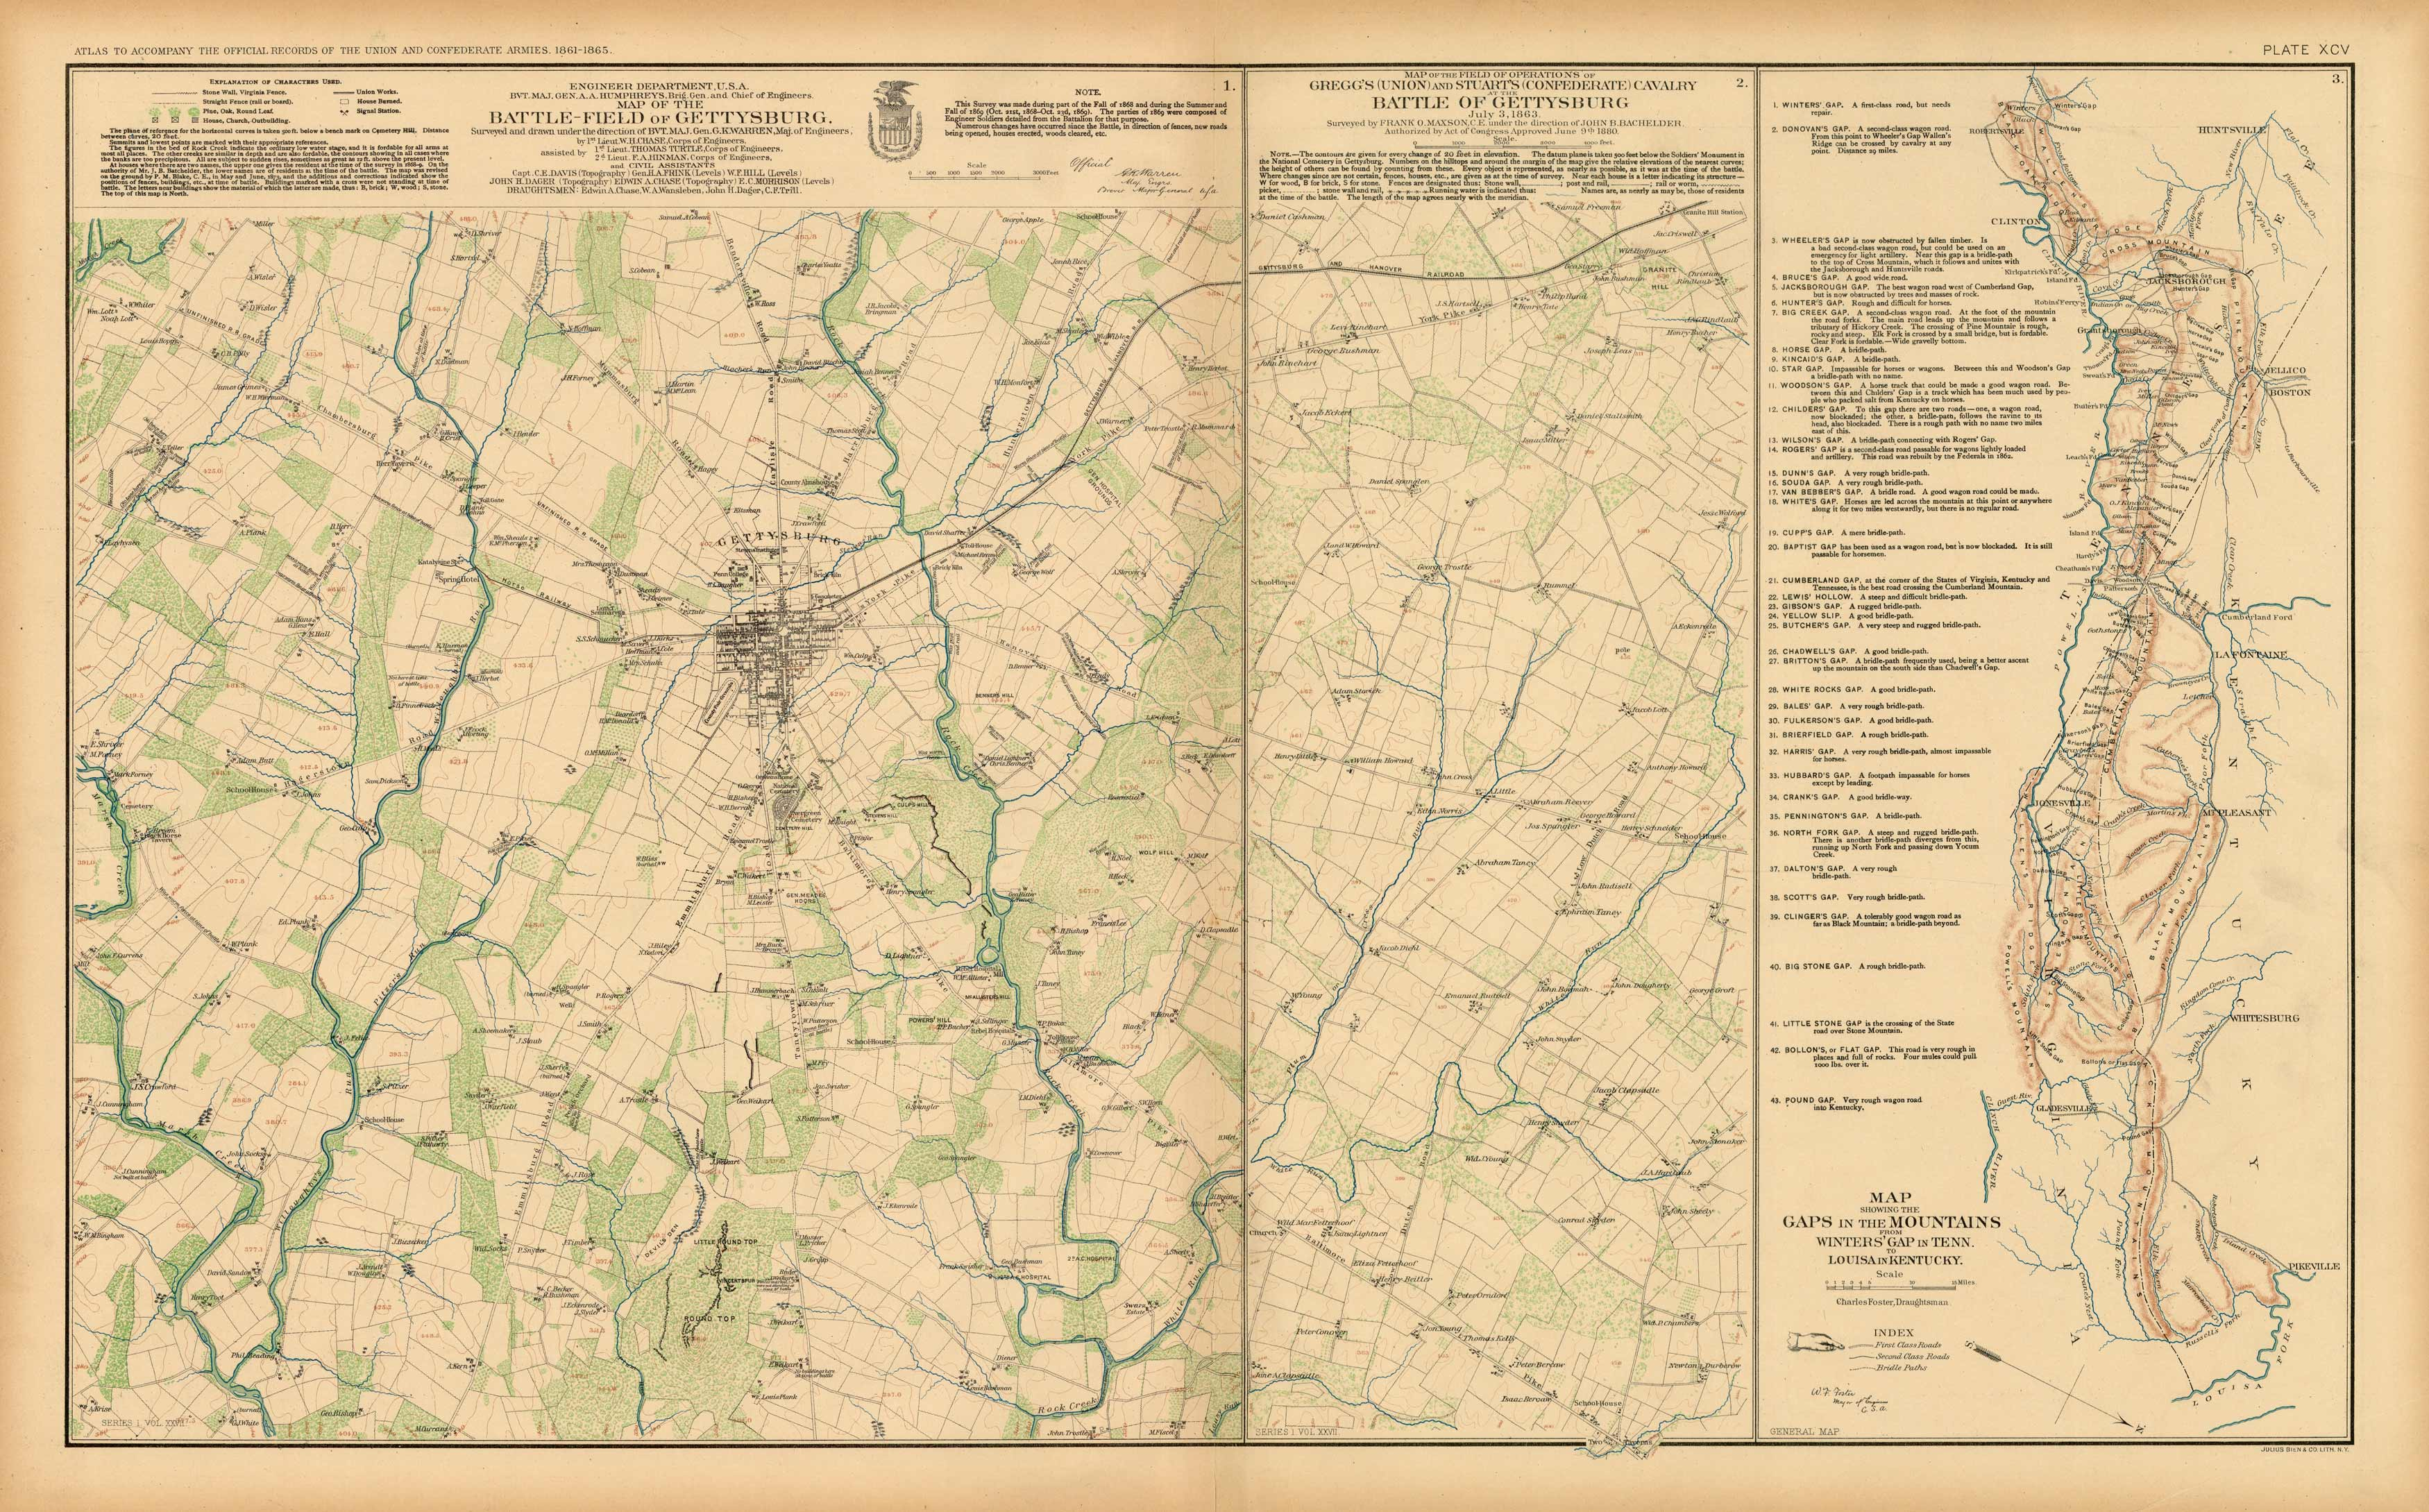 Civil War Atlas; Plate 95; Map of the Battle-Field of Gettysburg; Cavalry at Gettysburg; Gaps in the Mountains Winters in Tenn. to Louisa in Kentucky